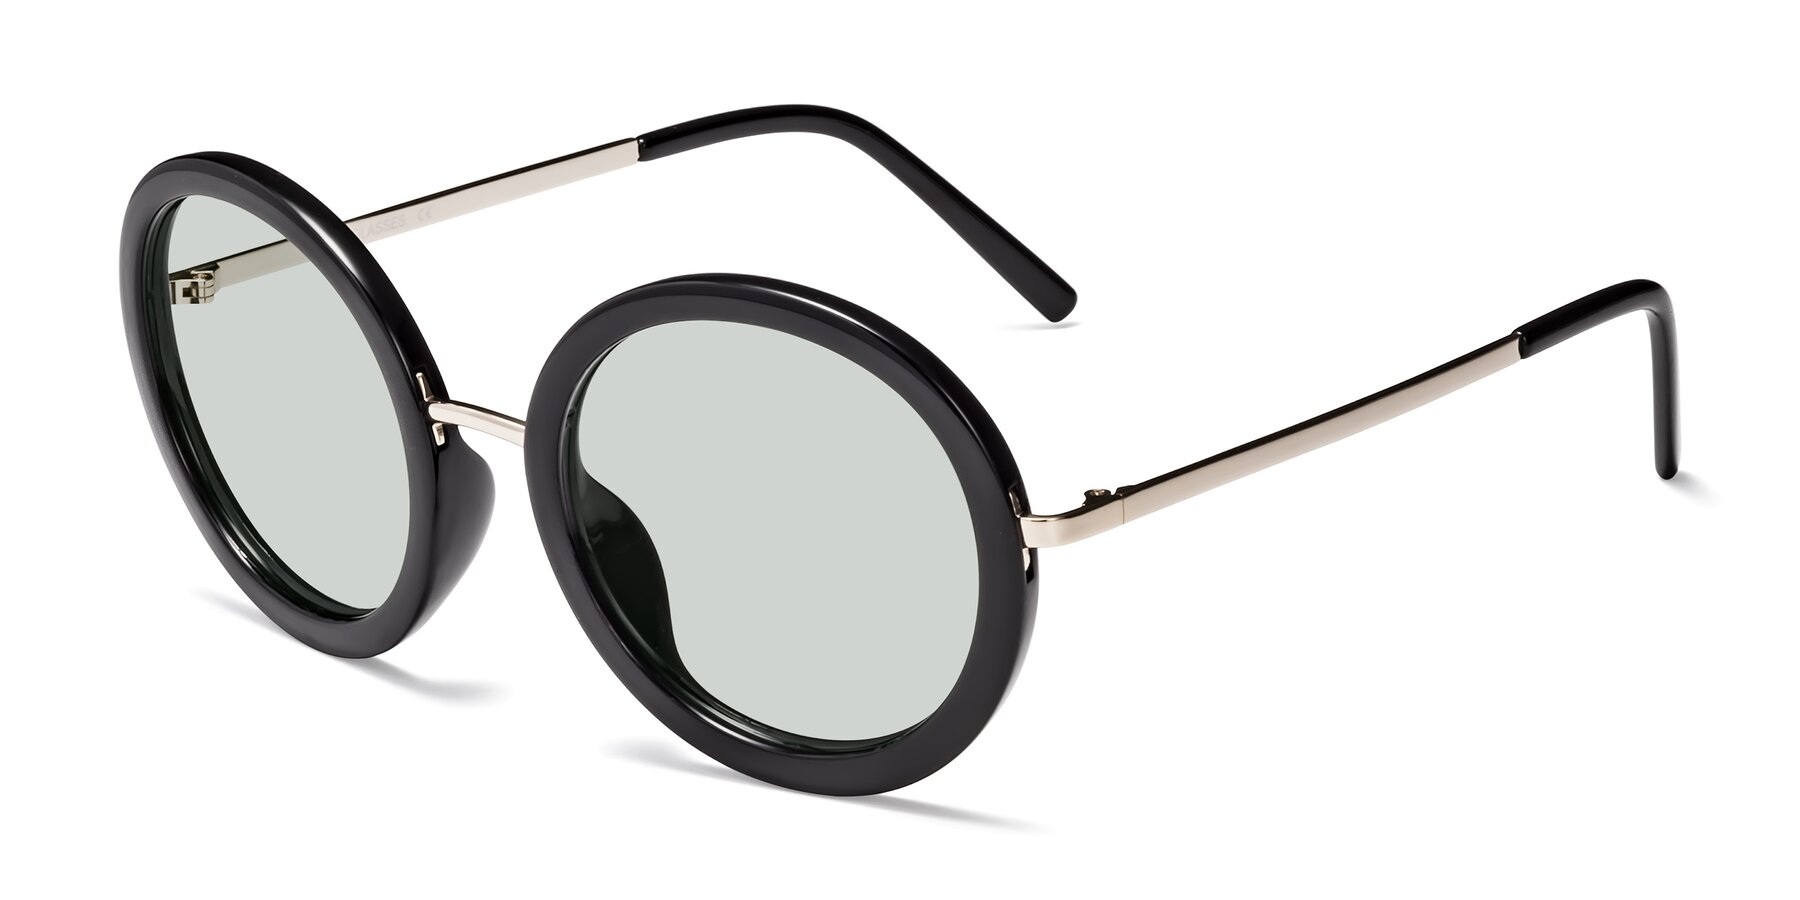 Angle of Bloom in Black with Light Green Tinted Lenses